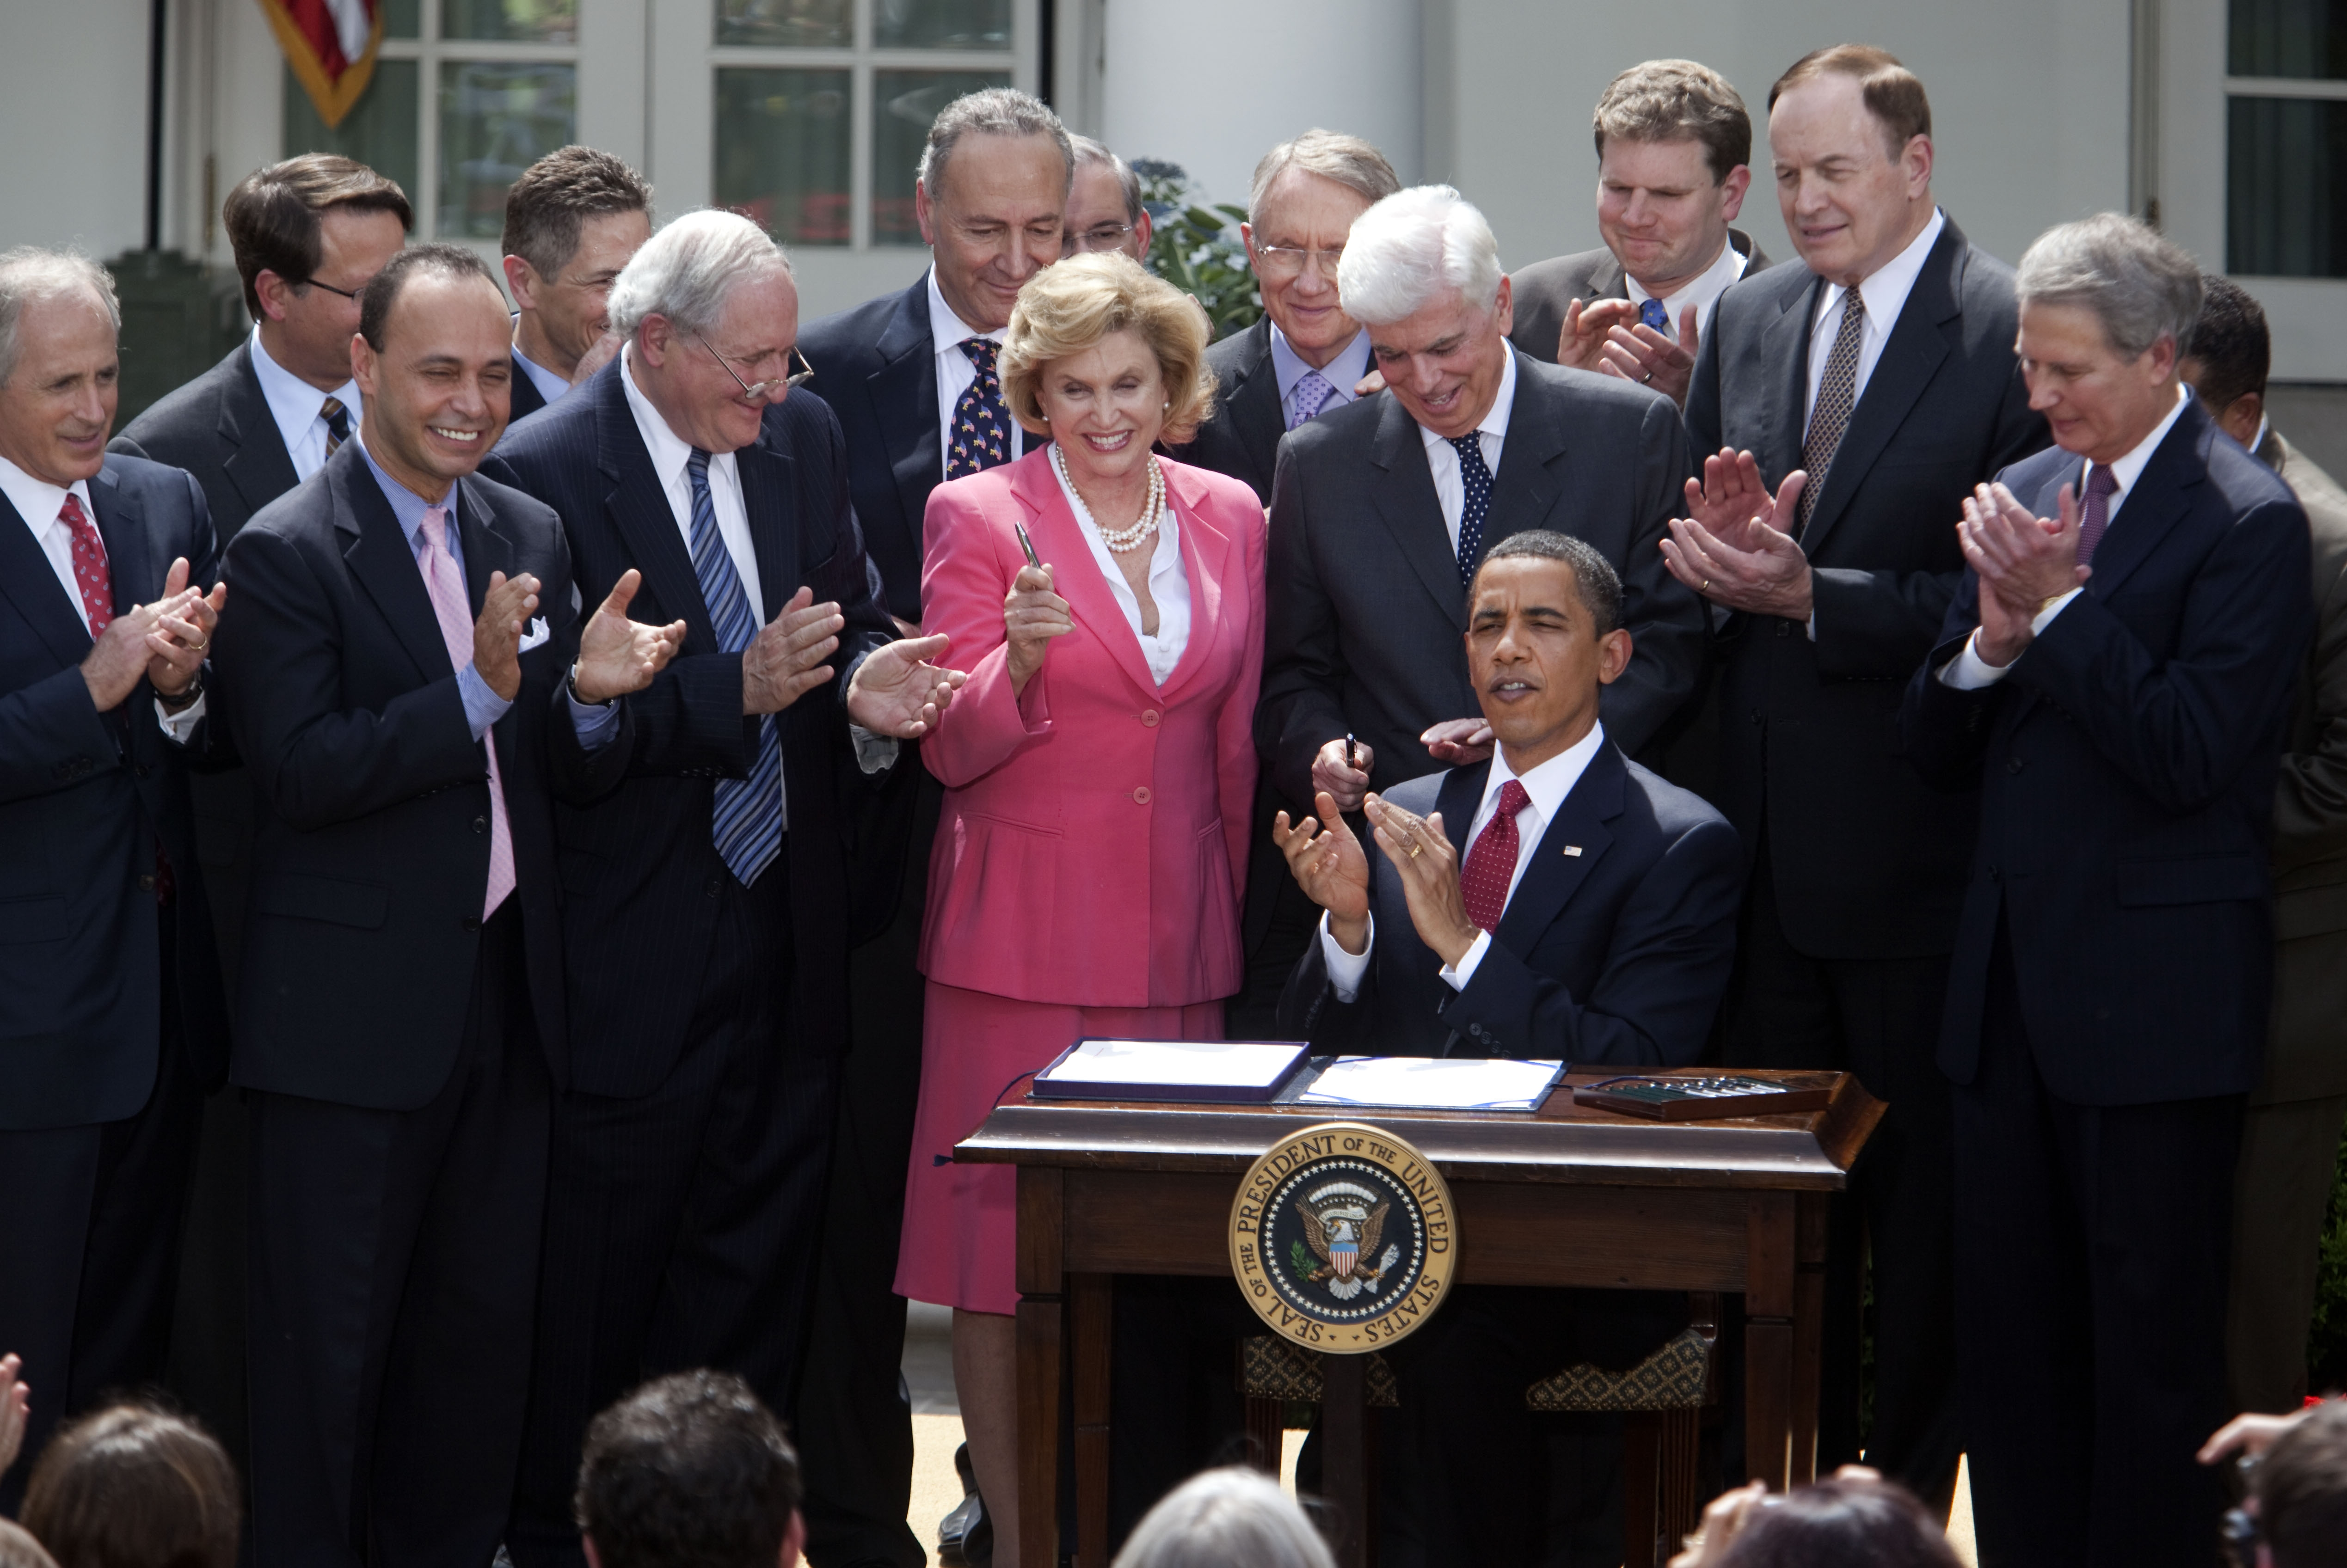 President Obama signs Rep. Maloney's Credit Cardholders' Bill of Rights in the White House Rose Garden